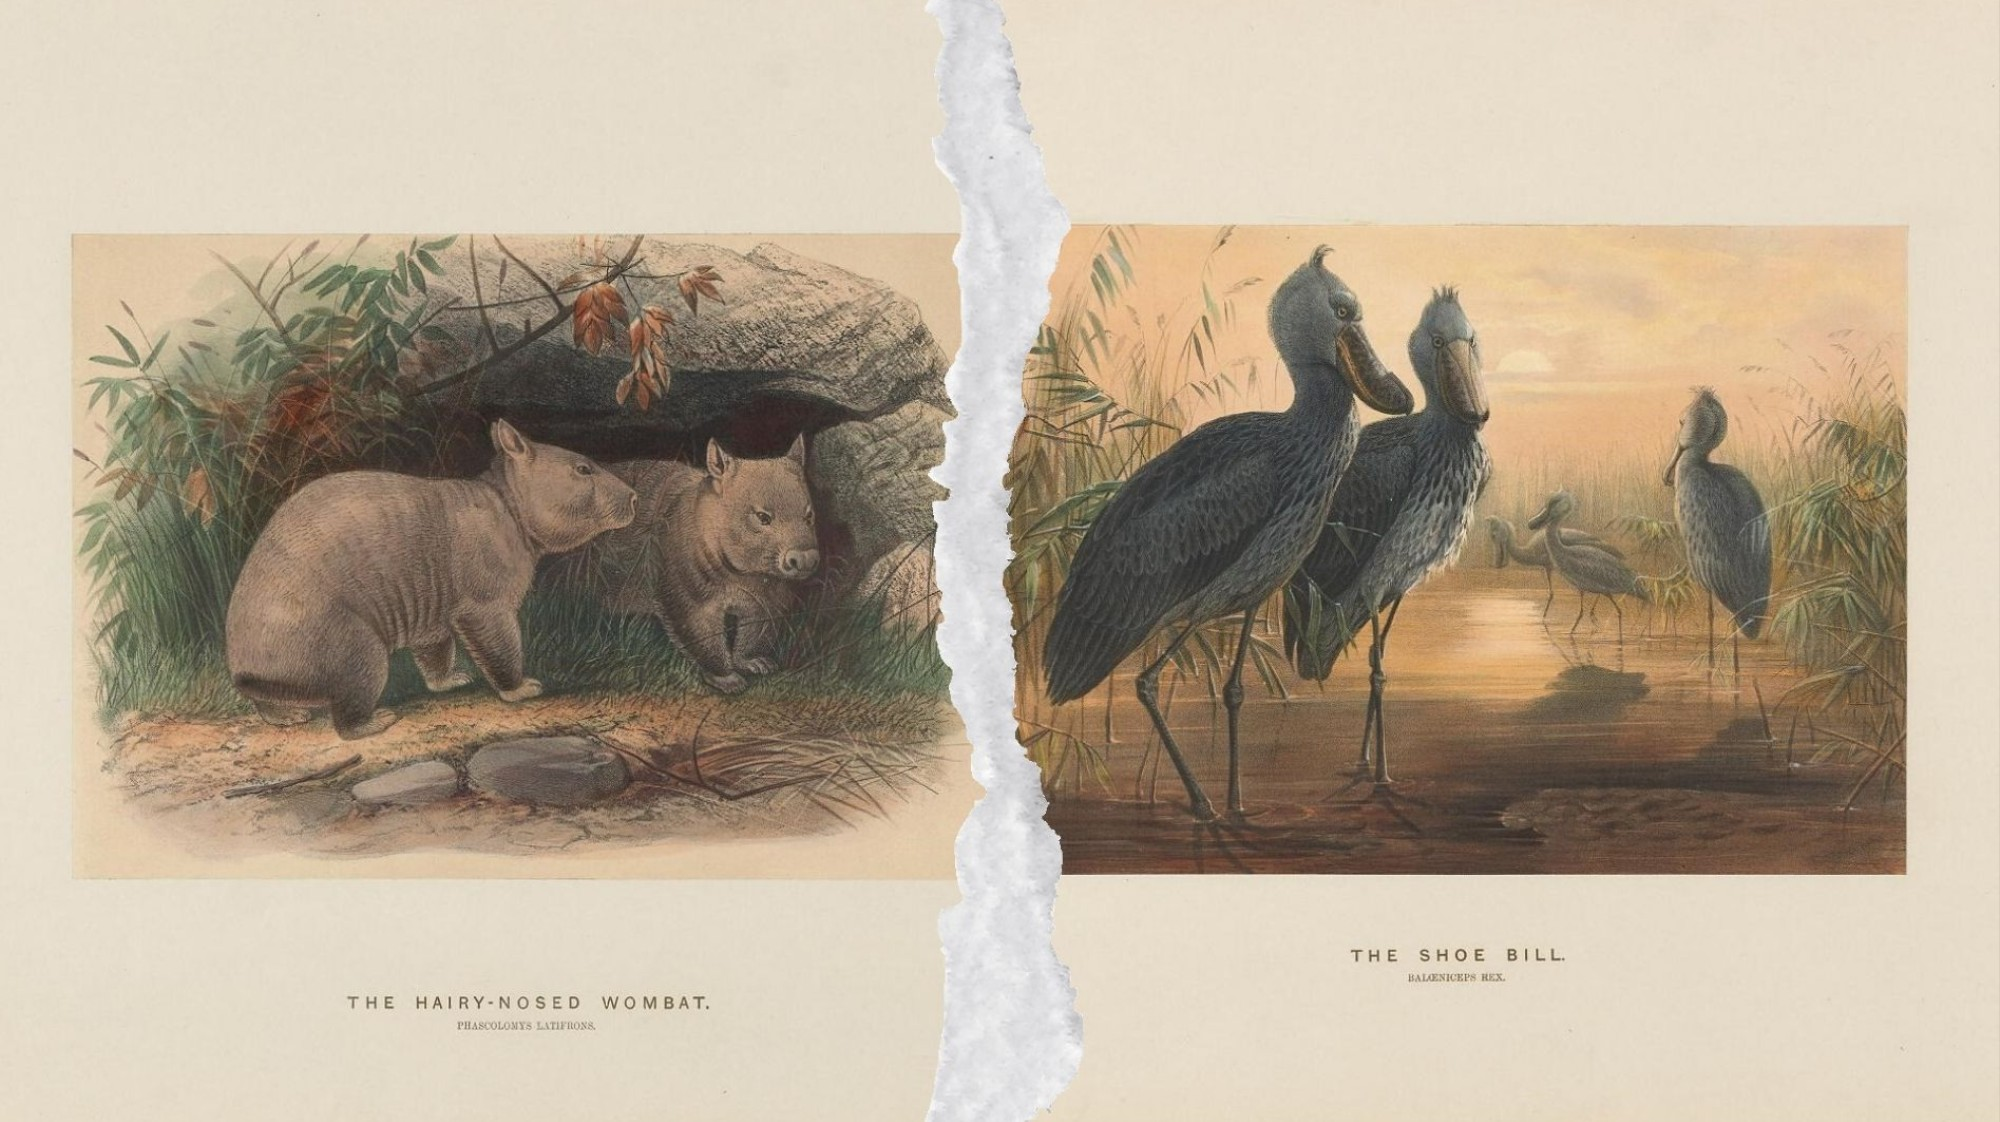 150K Nature Illustrations Spanning Hundreds of Years Are Now Free Online